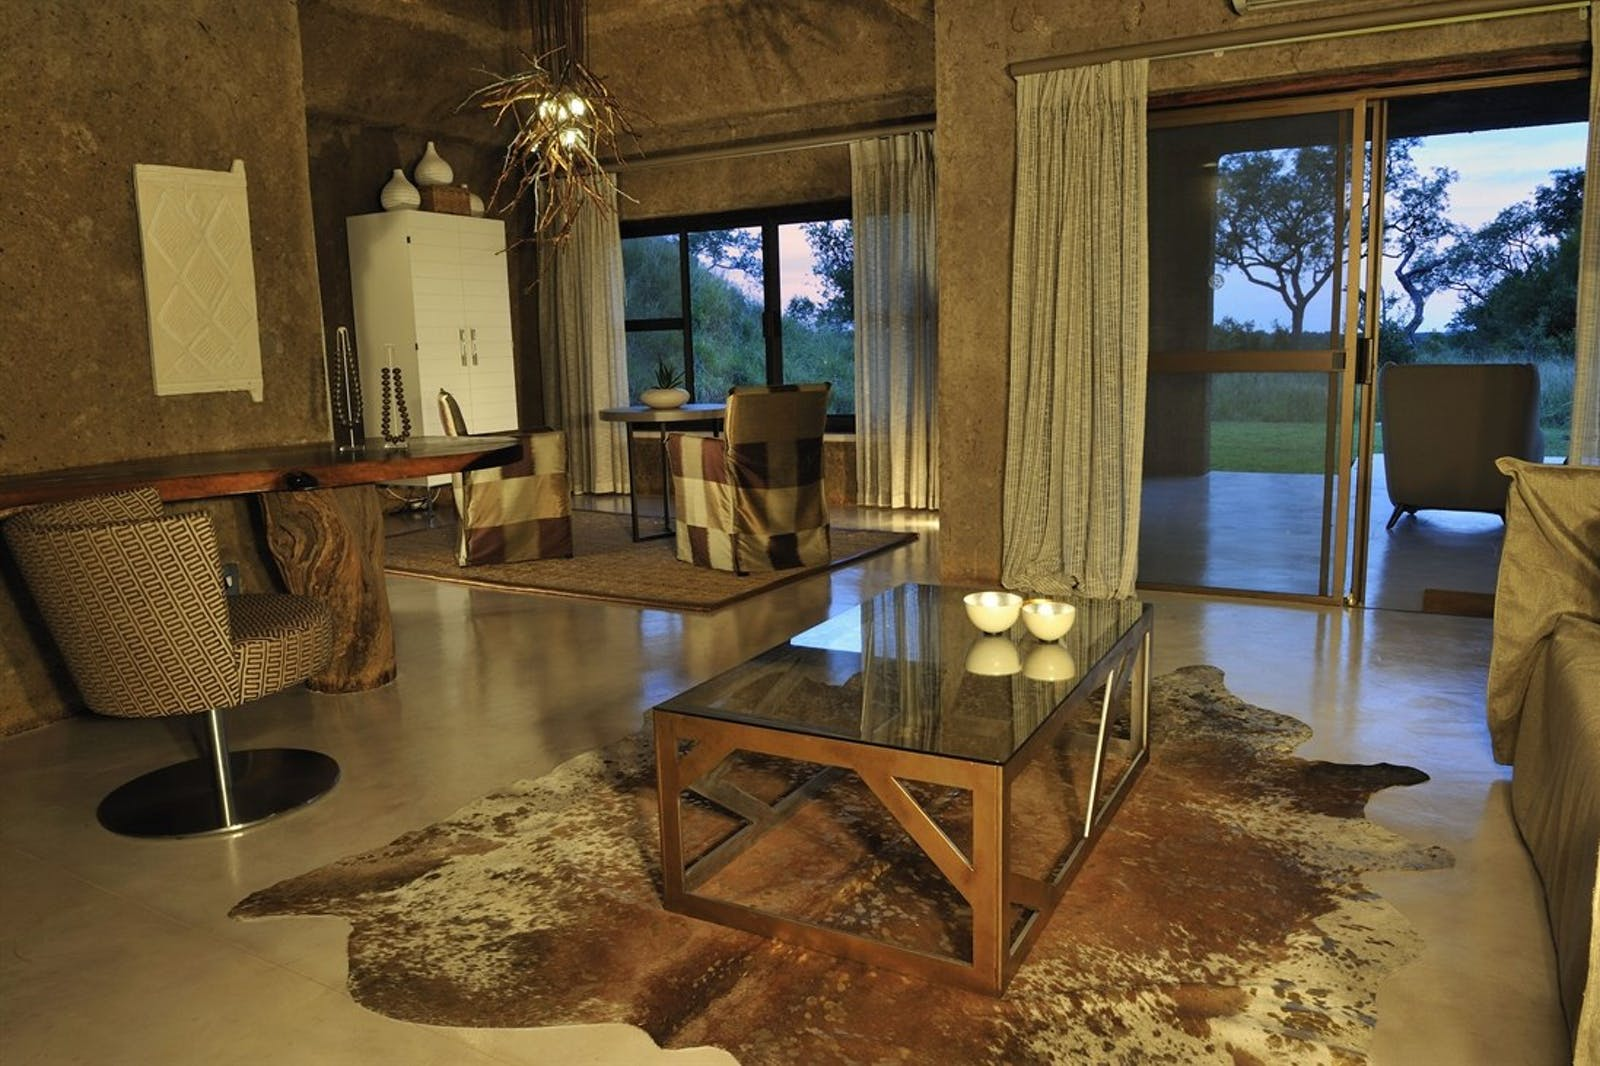 Bedroom lounge area at Sabi Sabi Earth Lodge, South Africa